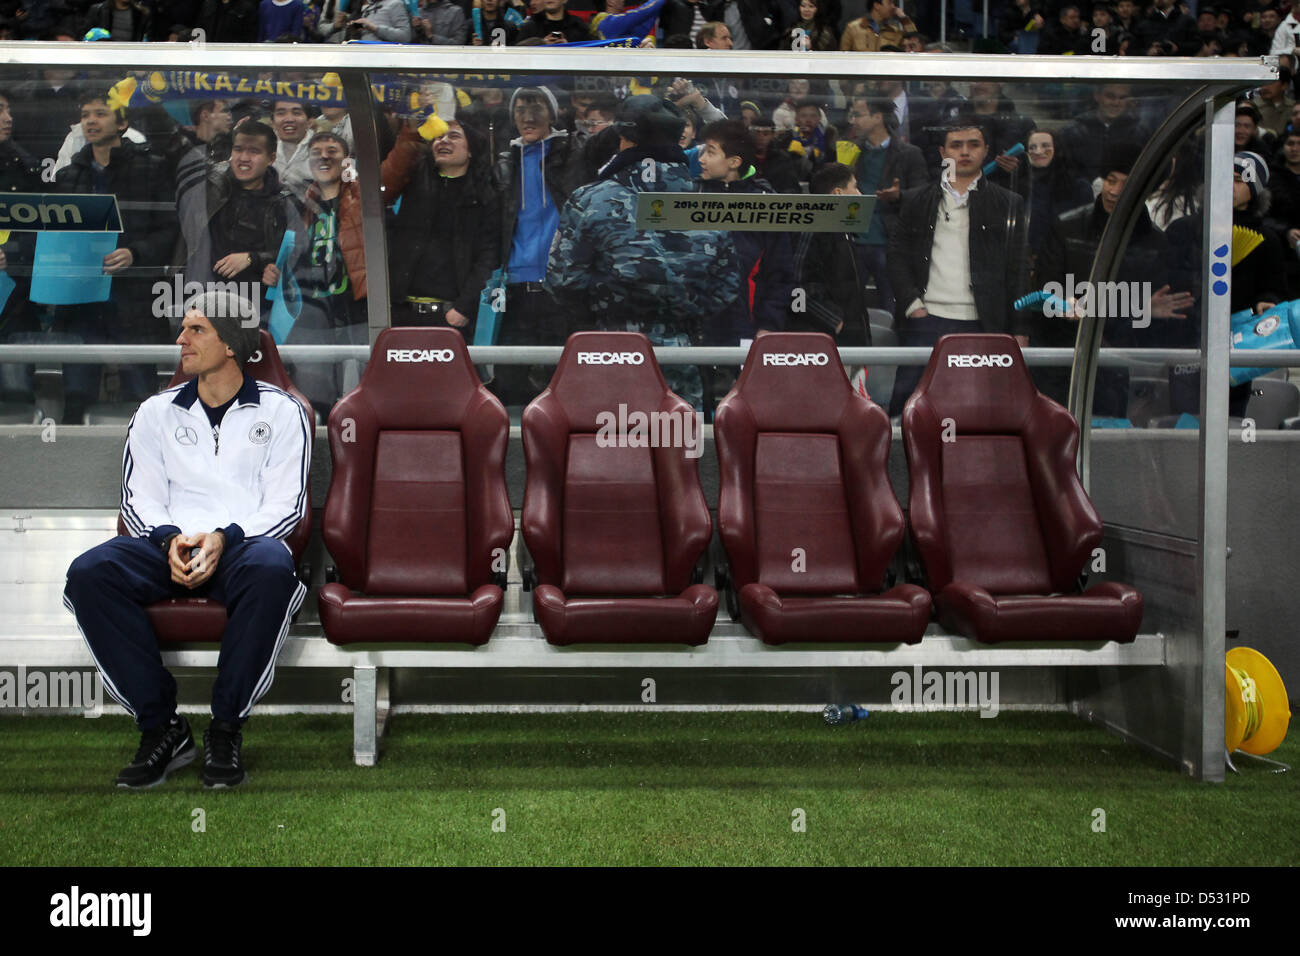 Astana, Kazakhstan. 22nd March 2013. Germany's Mario Gomez sits on the bench during the FIFA World Cup 2014 - Stock Image